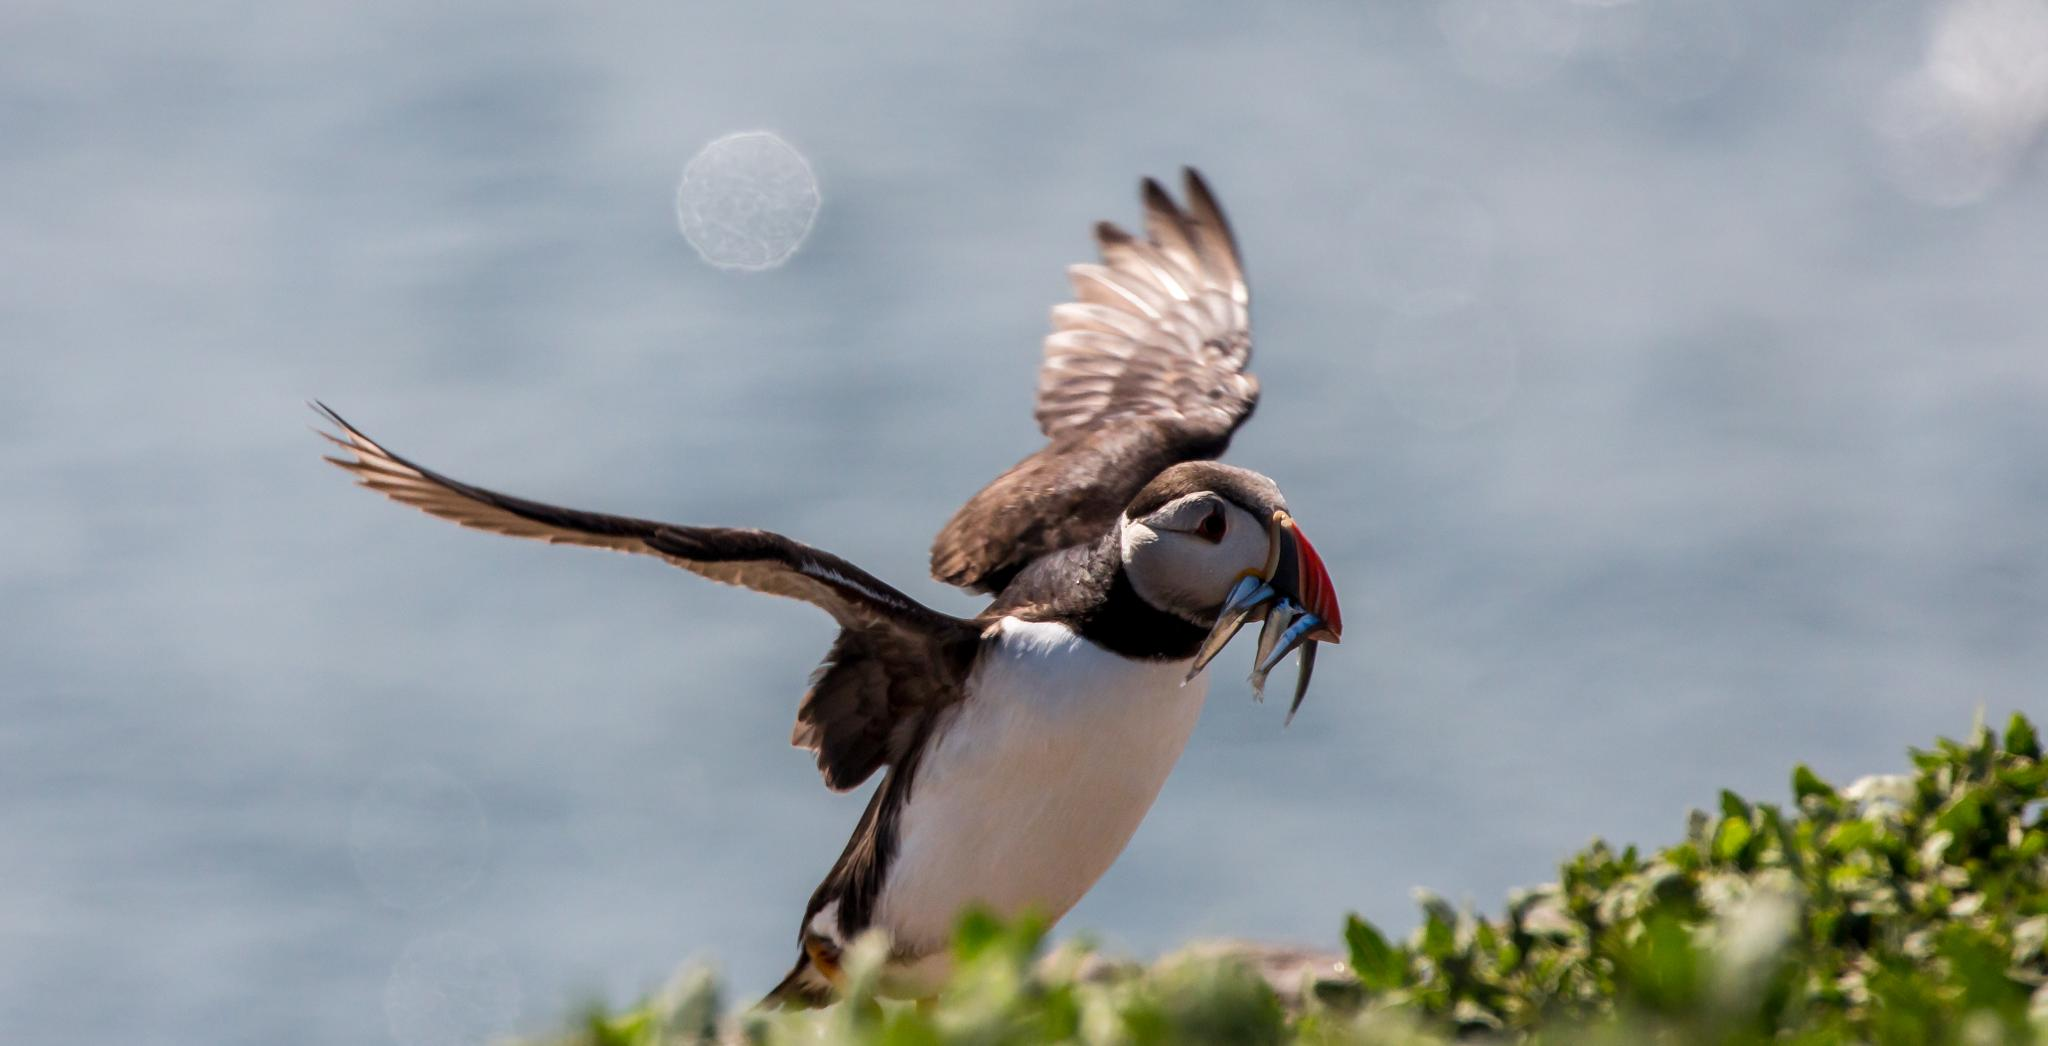 Puffin by Mole59